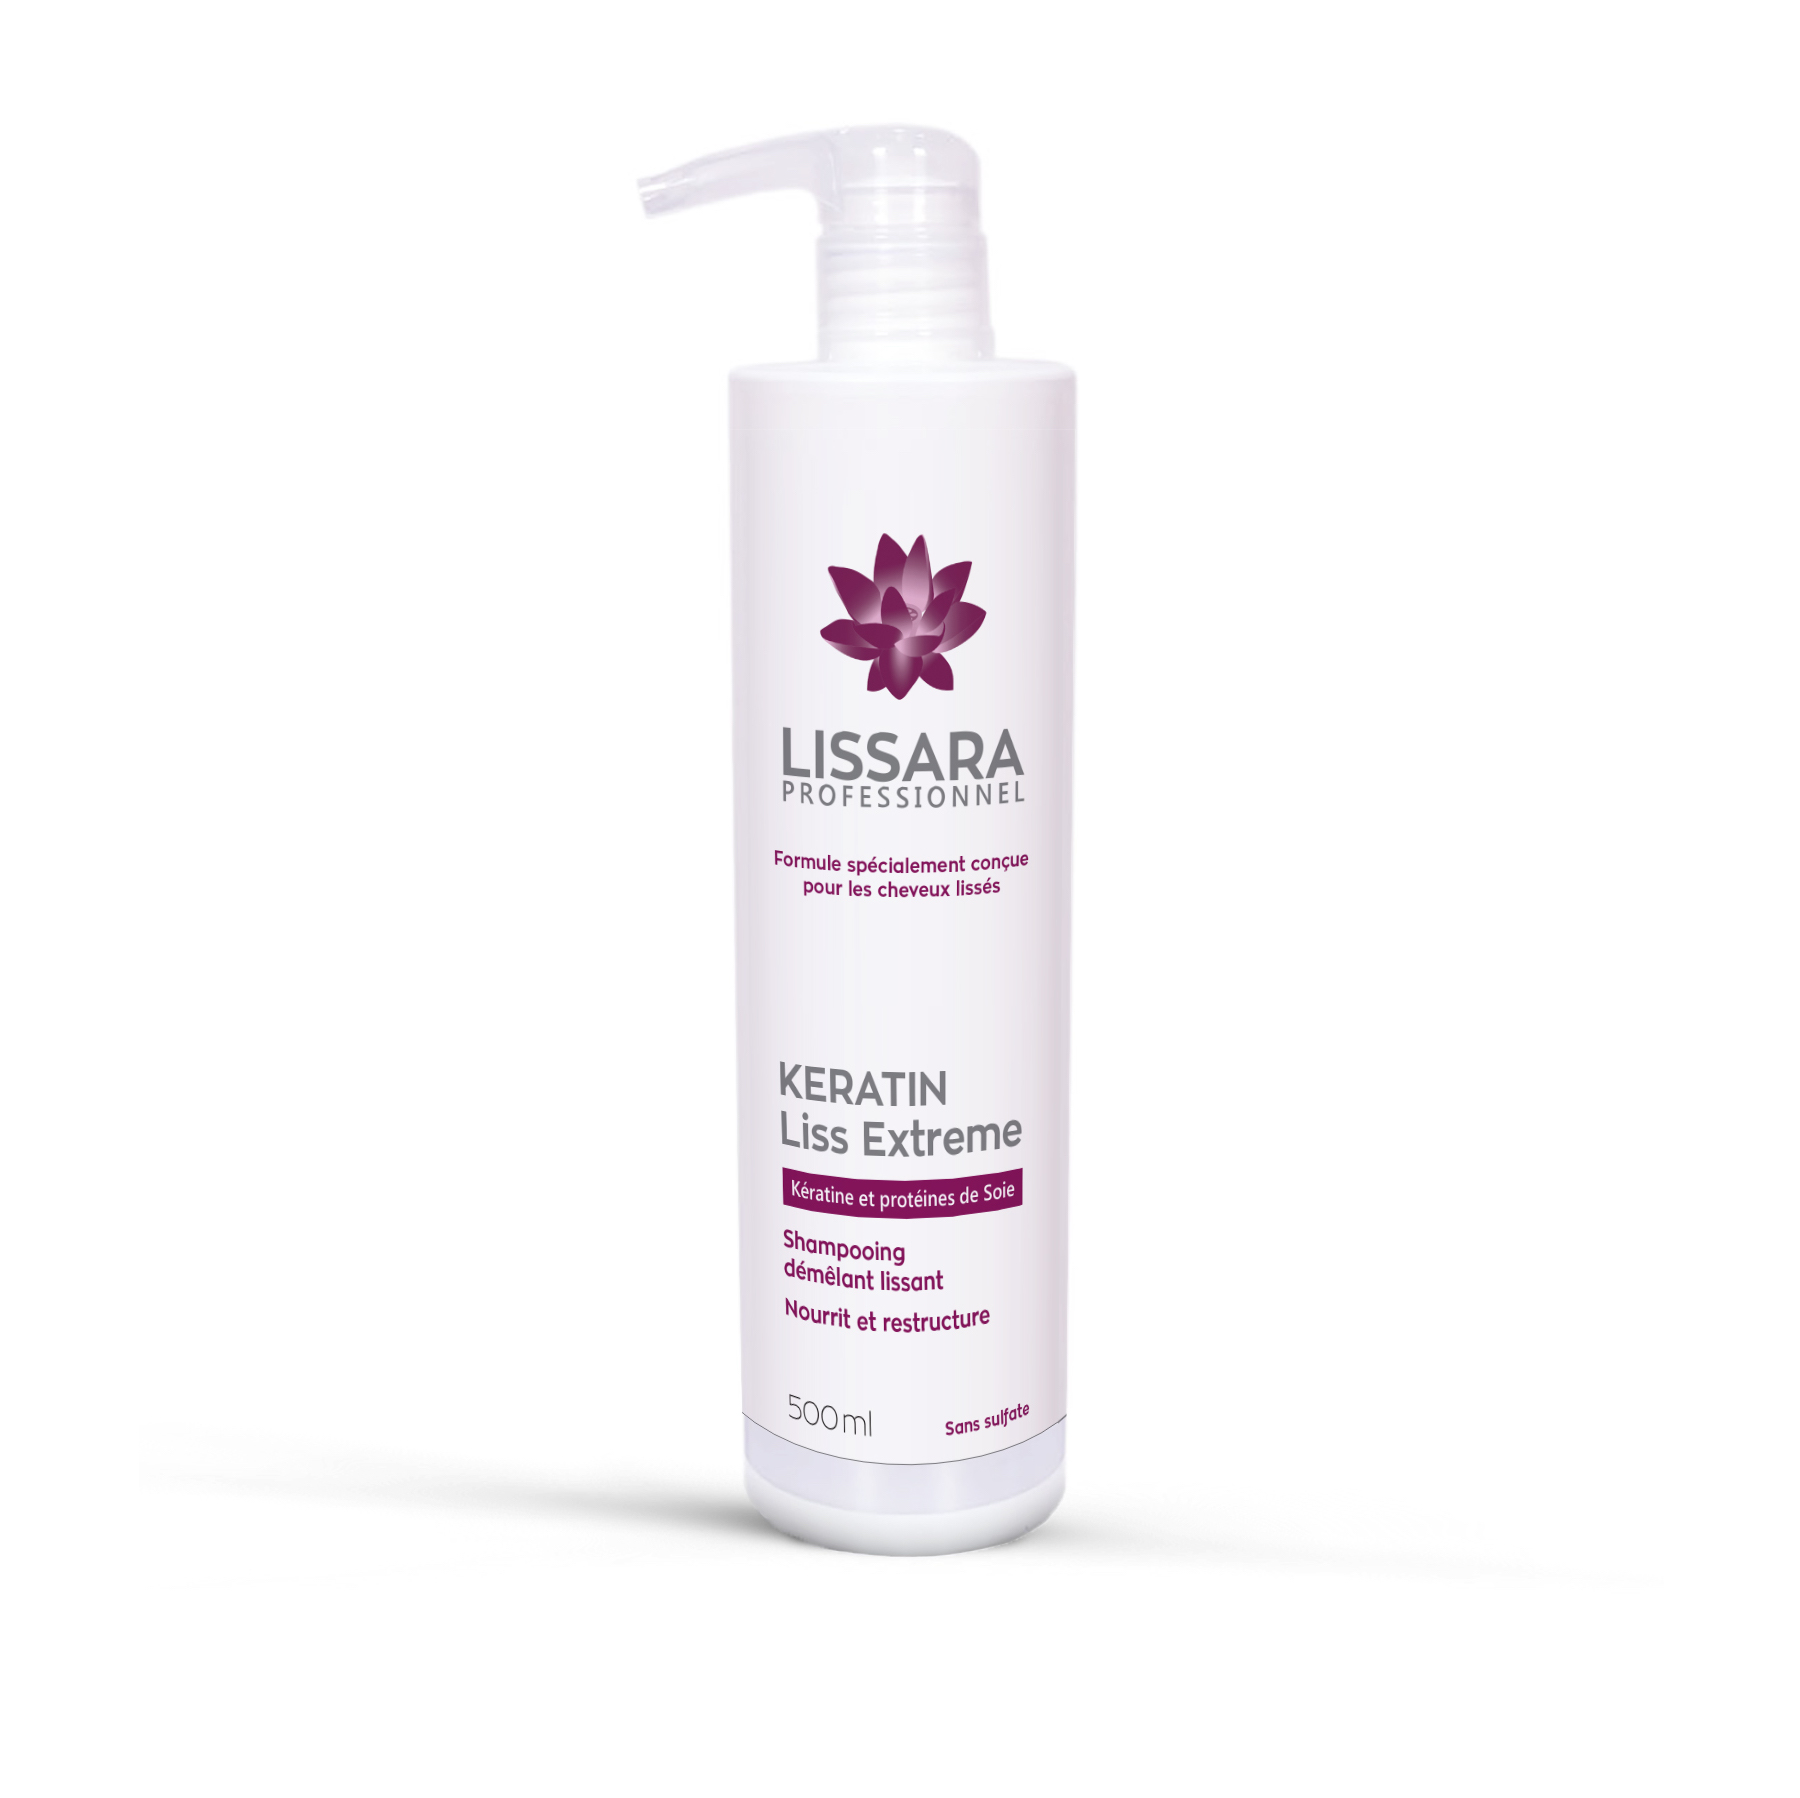 Lissara - Shampoing Entretien Lissage - Sans sulfates - 500ml